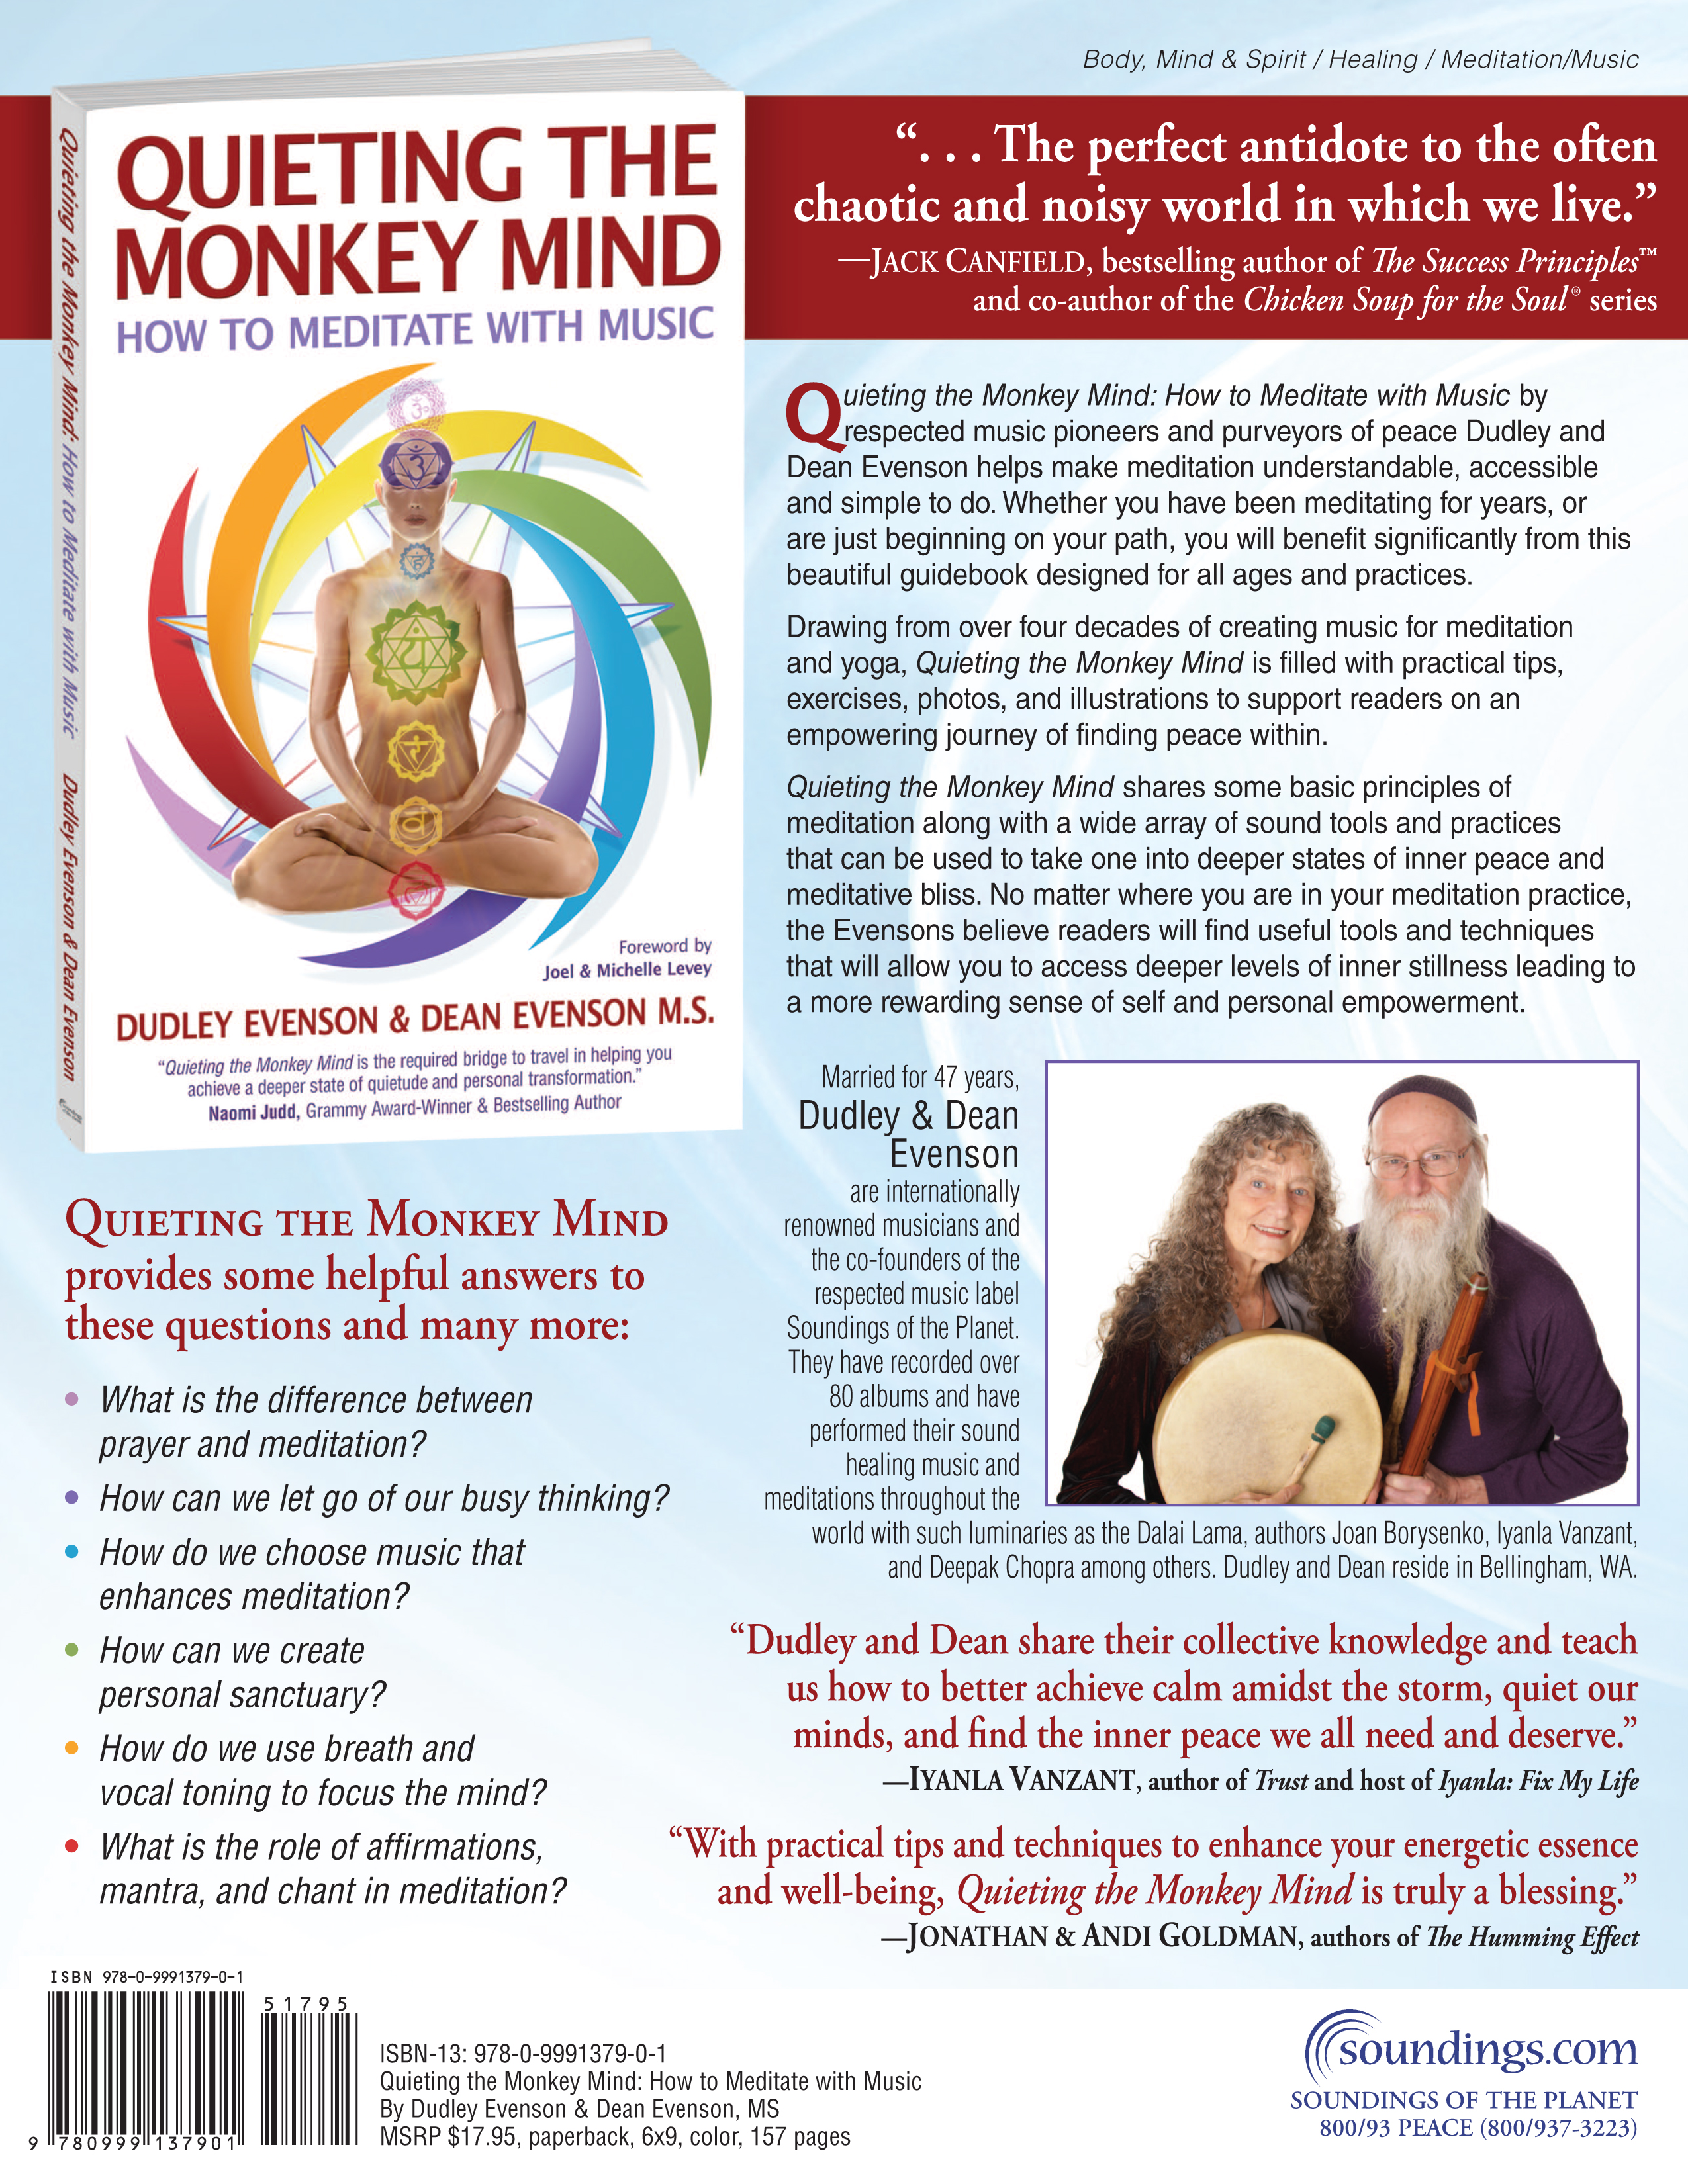 Quieting the Monkey Mind - Soundings of the Planet